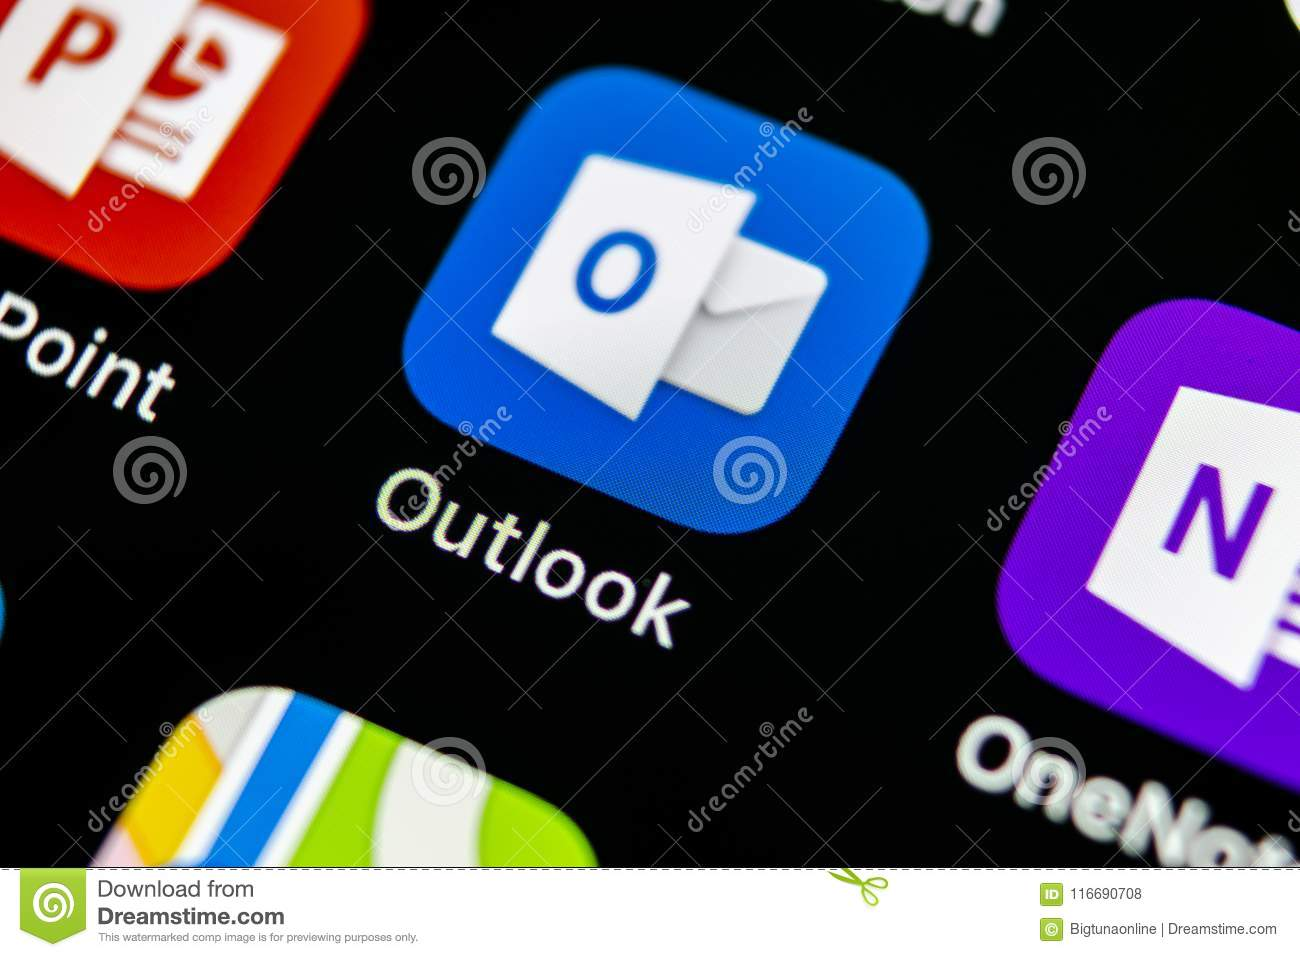 Microsoft Outlook Office Application Icon On Apple Iphone X Screen